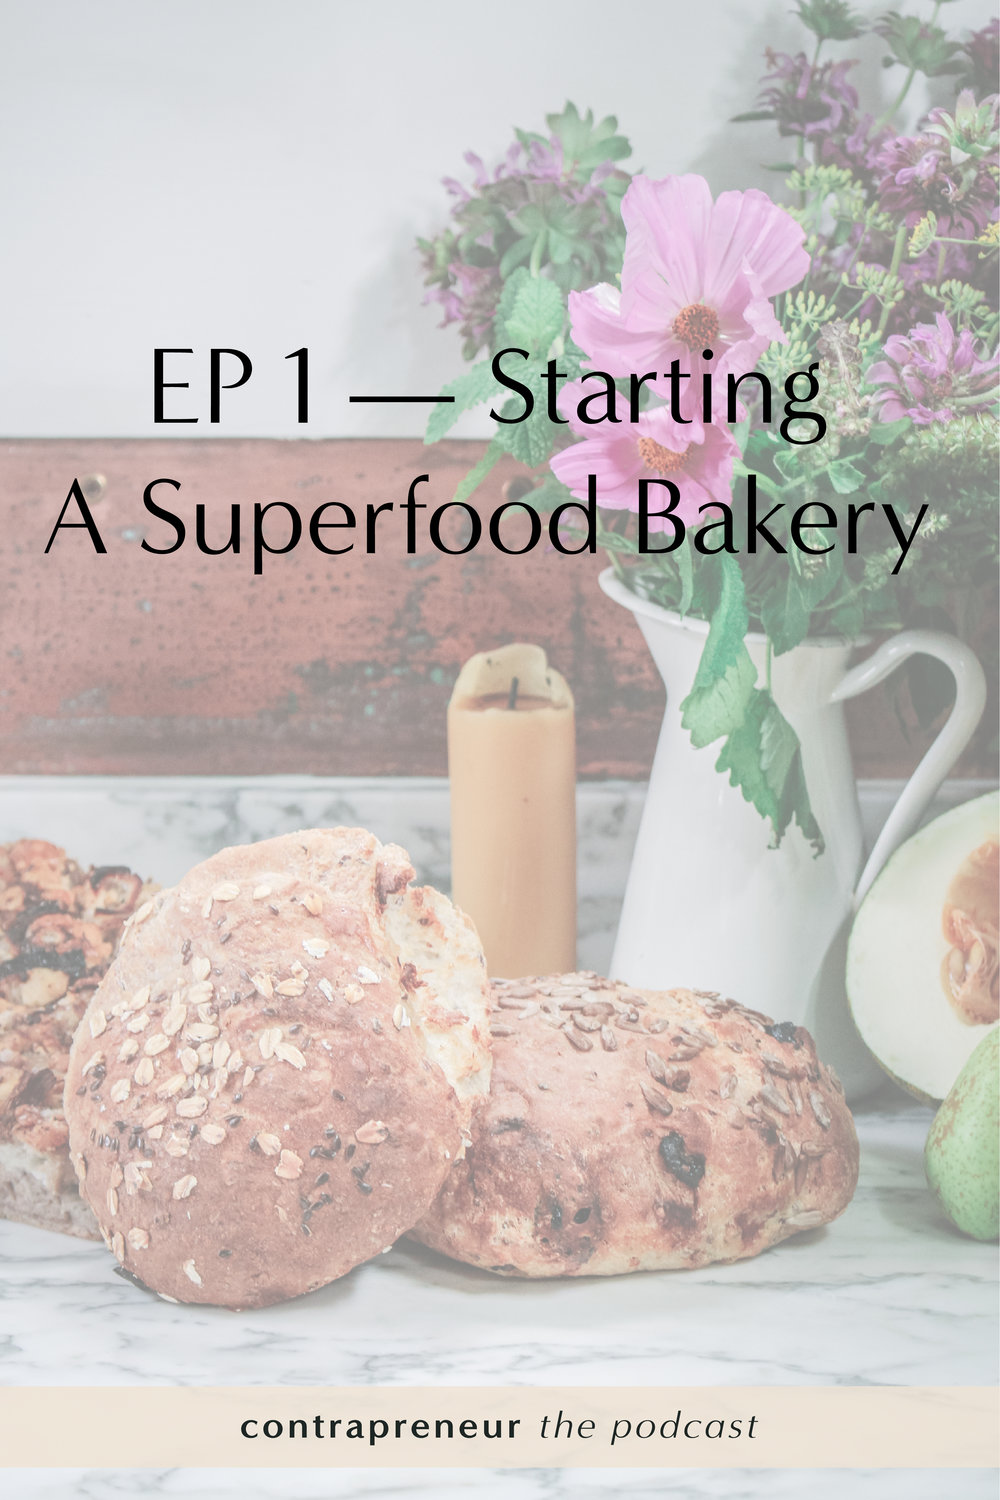 Starting A Superfood Bakery